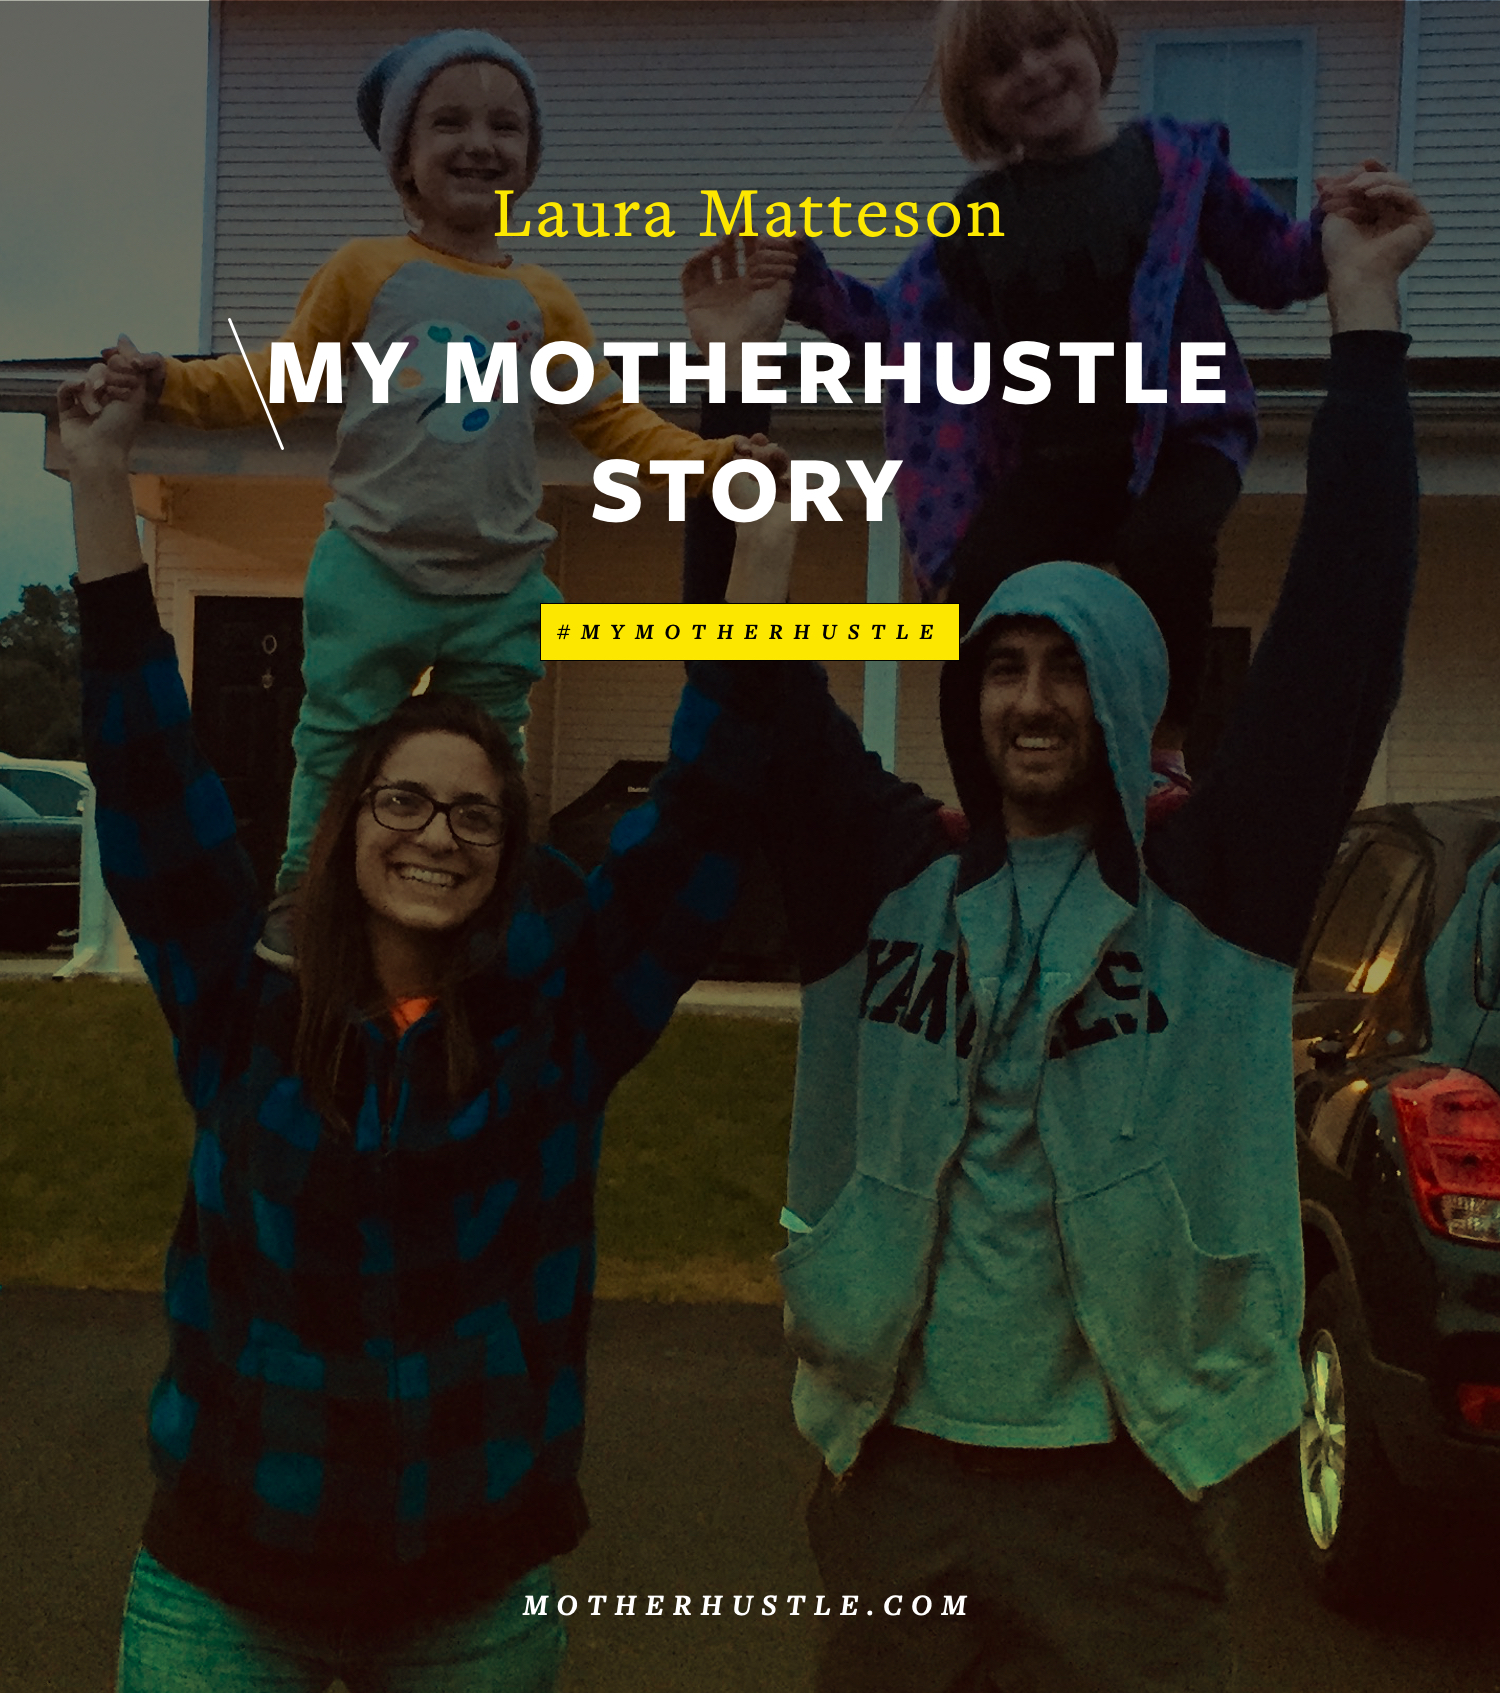 My MotherHustle Story- Laura Matteson